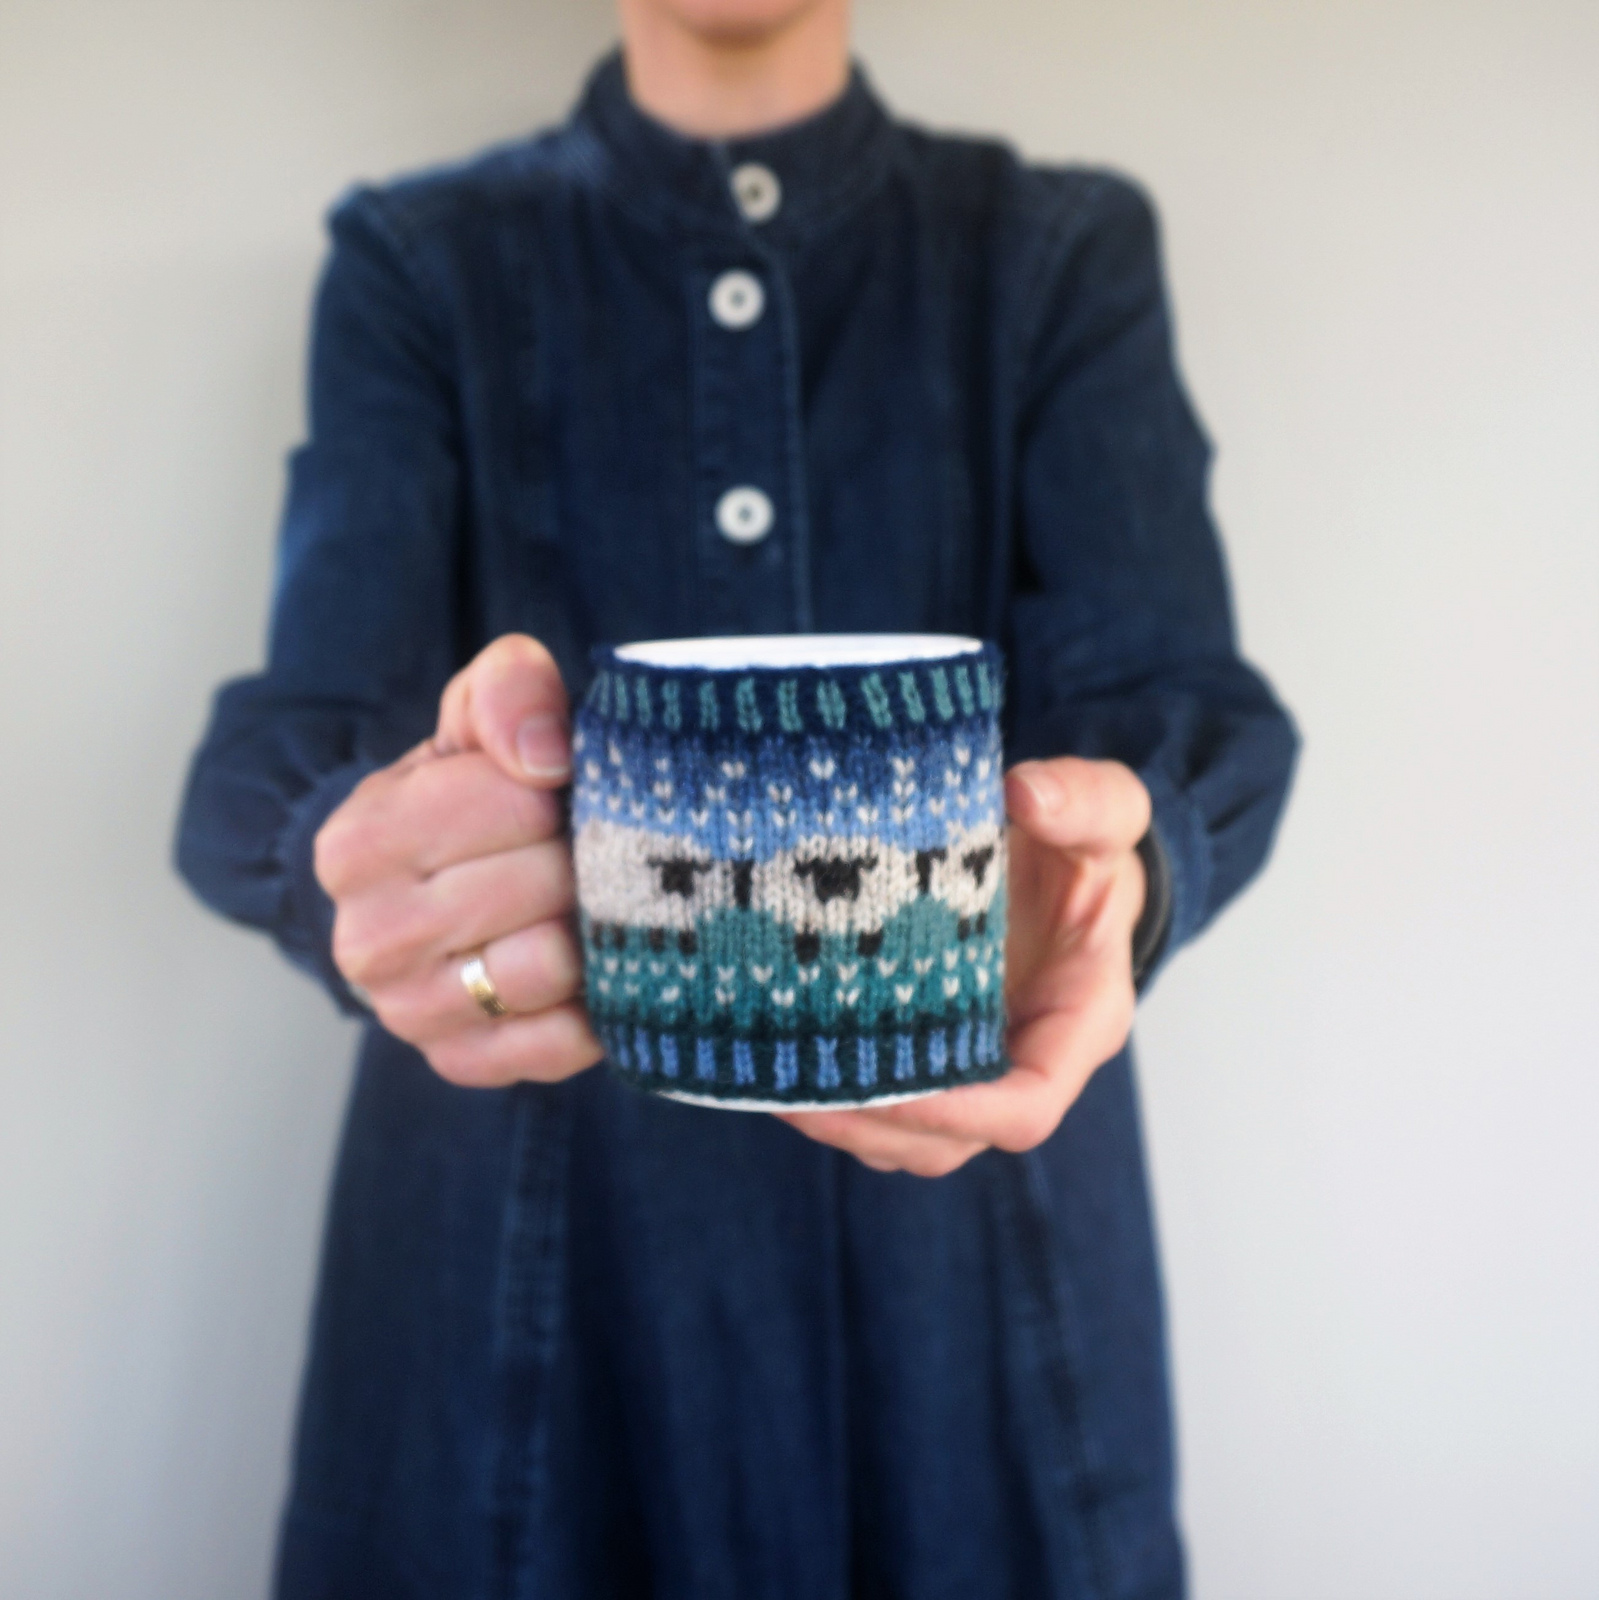 I Spy Sheep On This Baa-ble Knitted Mug Cosy ... Cute and Sophisticated Too!